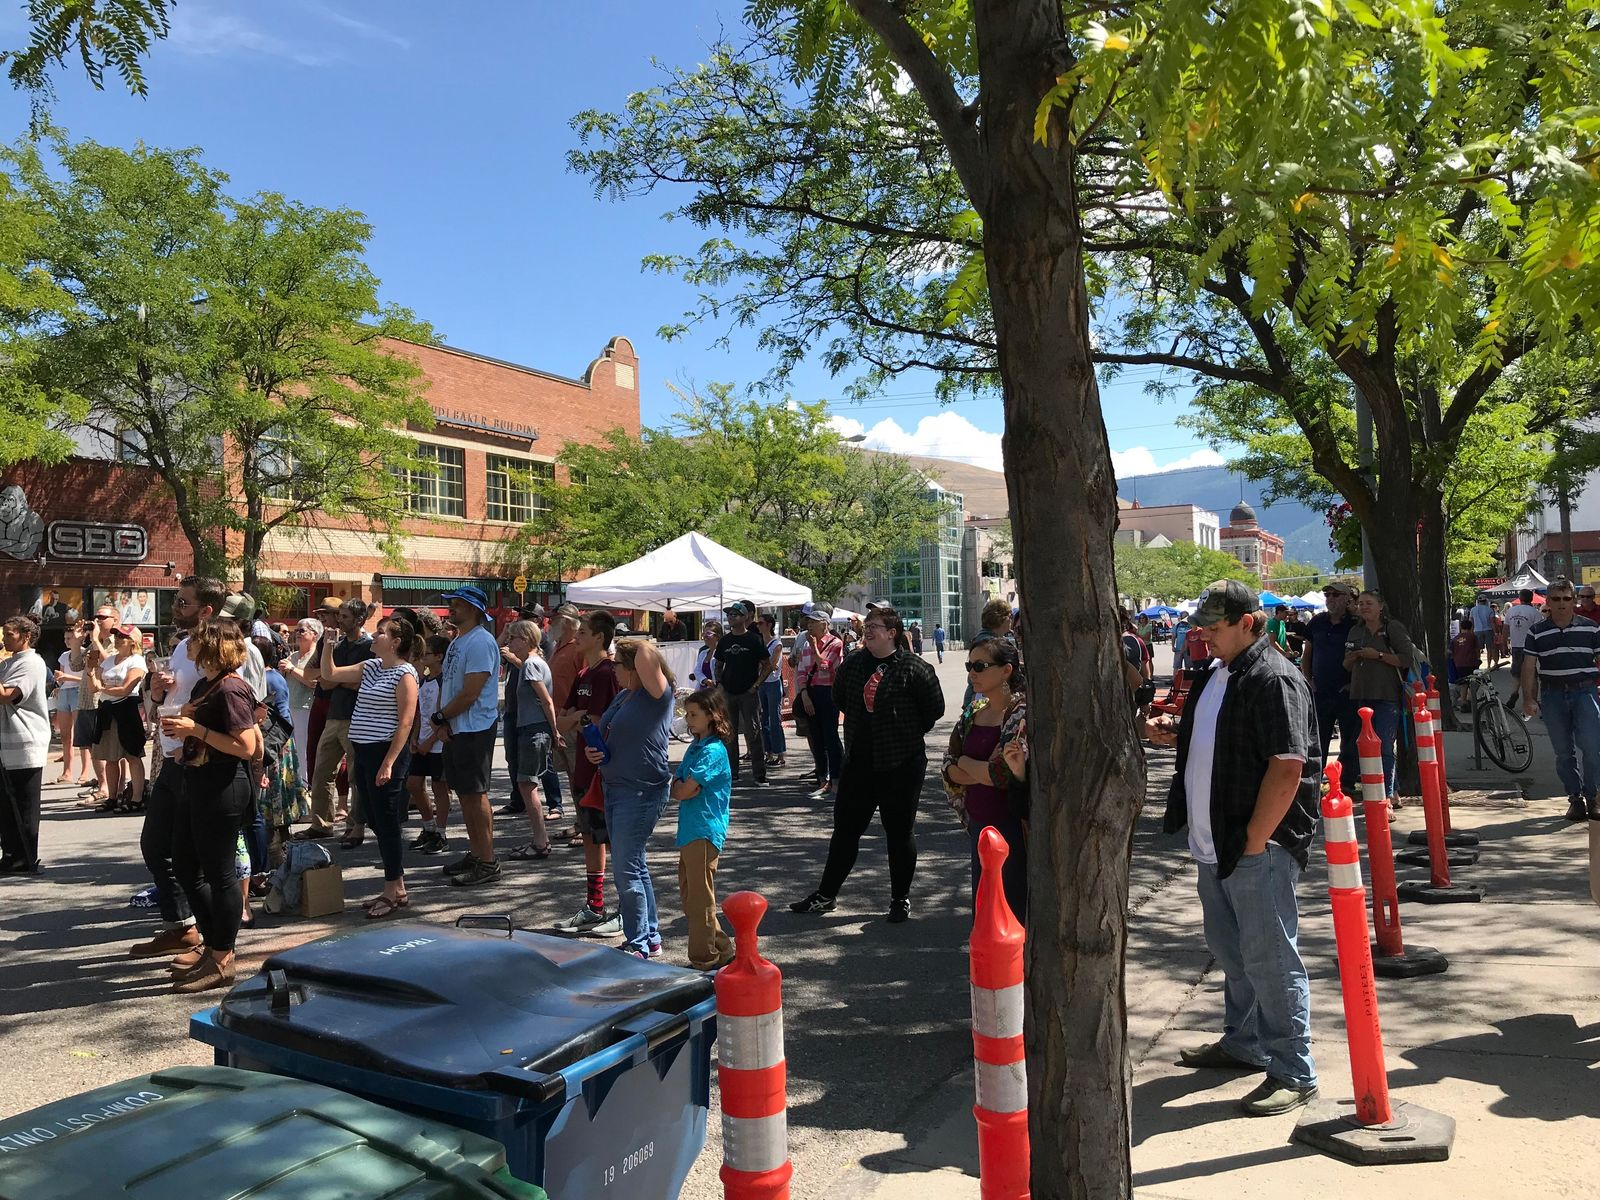 People began to set up their chairs and pick their spots on the sidewalk and street in front of the main stage before enjoying and dancing to the music (Photo: NBC Montana){&nbsp;}<p></p>